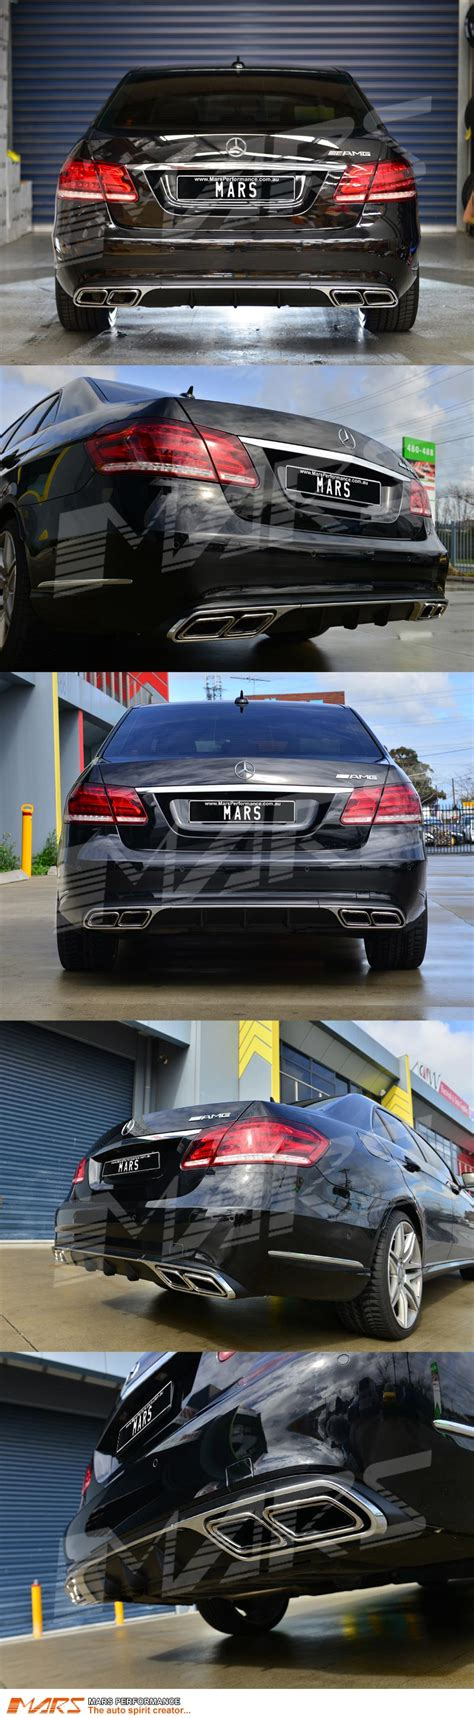 Mercedes W212 E500 Durable Premium Car Cover List Black amg e63 style bumper diffuser exhaust tips for mercedes standard w212 bar ebay